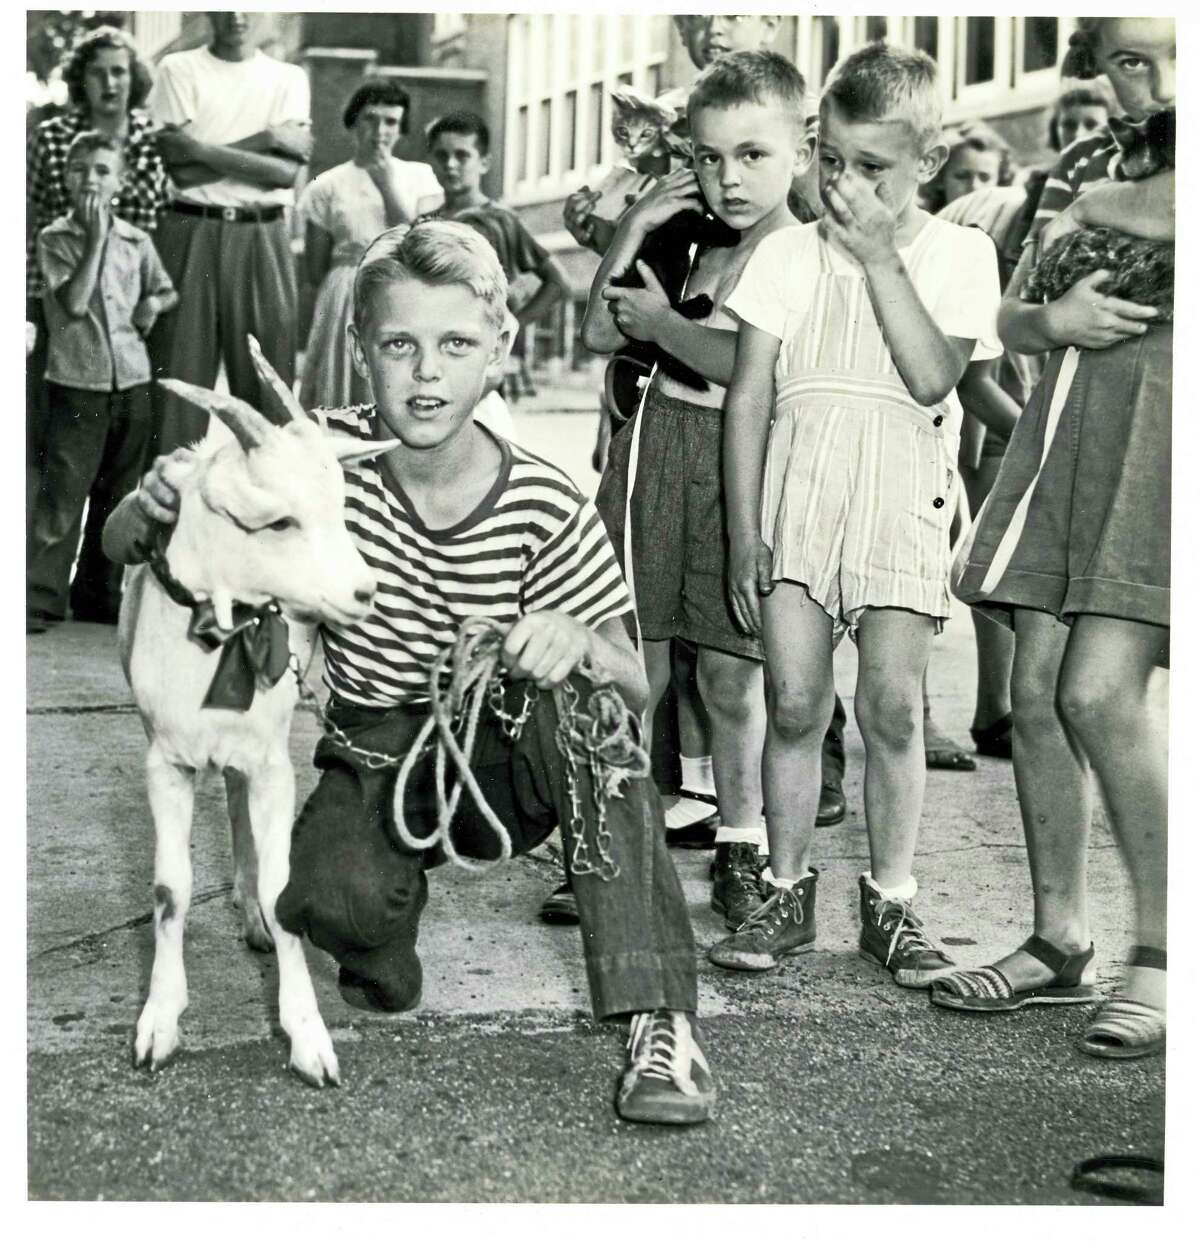 Photo courtesy of the Torrington Historical Society ArchivesBobby Martinotti and his pet goat, winner of Torrington Park and Rec Department's pet contest at Southwest School in the 1940s, is one of the photographs featured in the society's new exhibit, Pet Pals, which opens Thursday. The exhibit also features a collection of photos contributed by members of today's Torrington community.